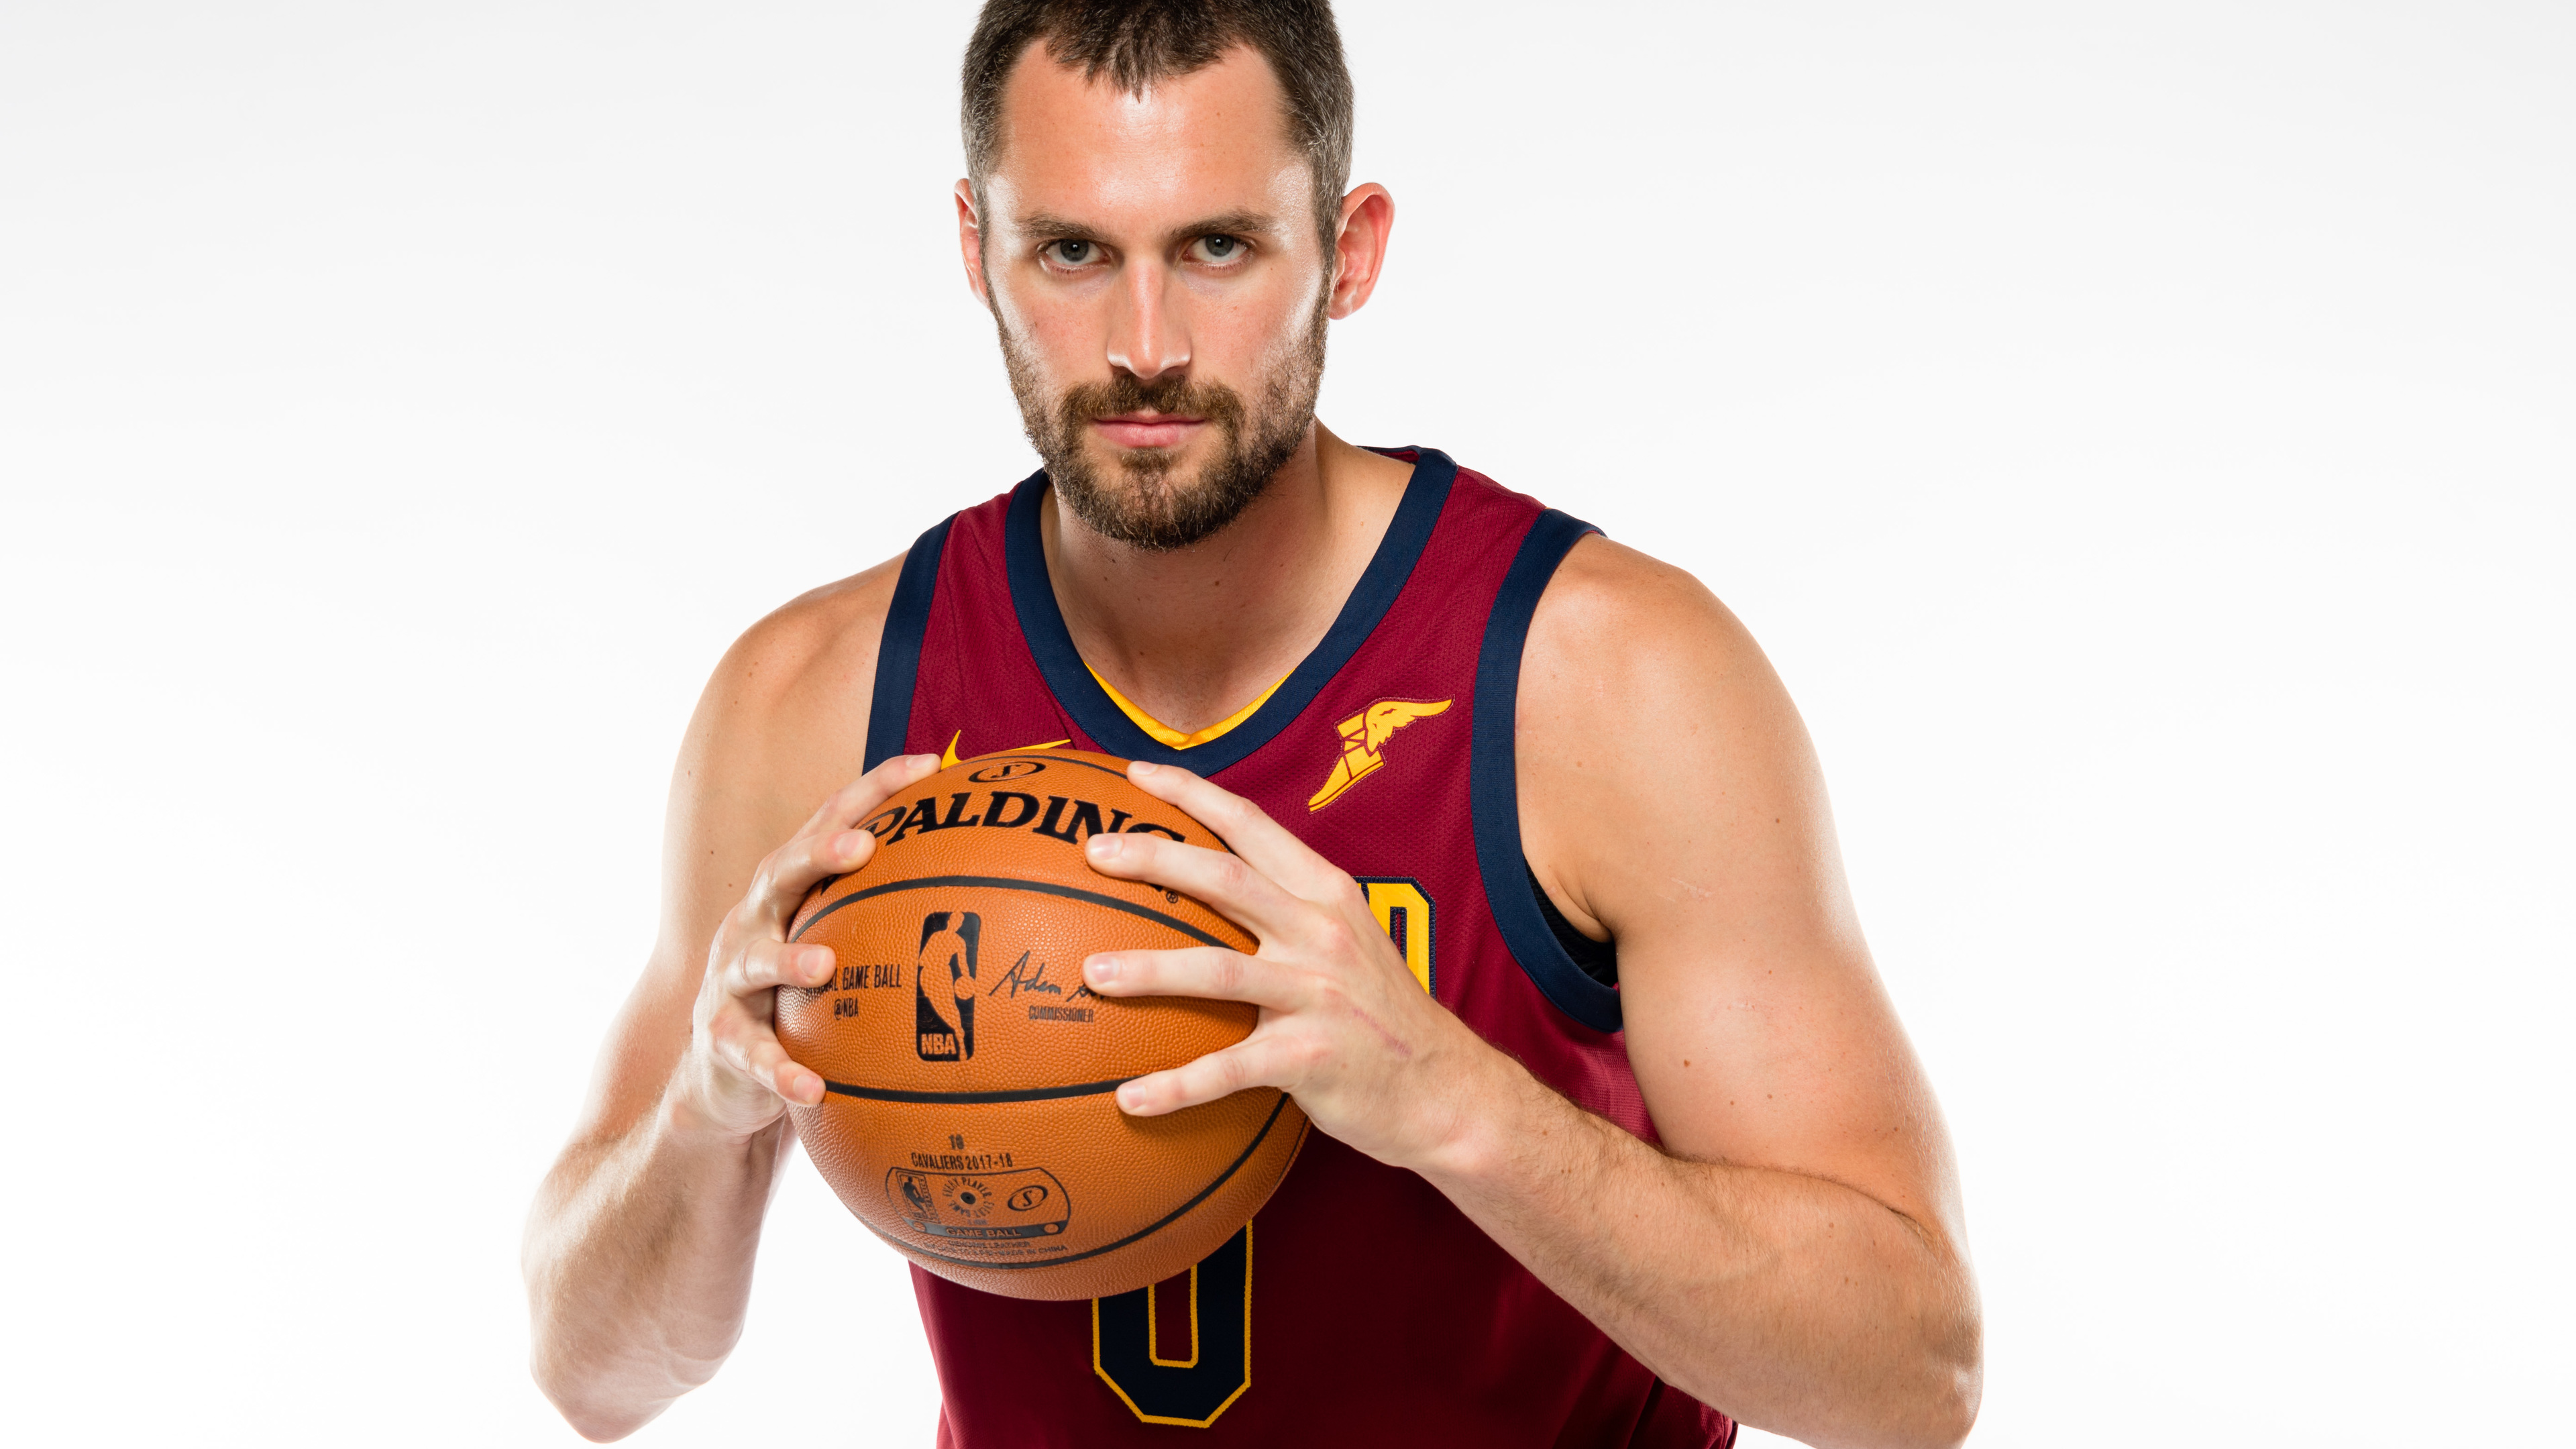 kevin love 1538786928 - Kevin Love - sports wallpapers, nba wallpapers, male celebrities wallpapers, kevin love wallpapers, hd-wallpapers, boys wallpapers, 5k wallpapers, 4k-wallpapers